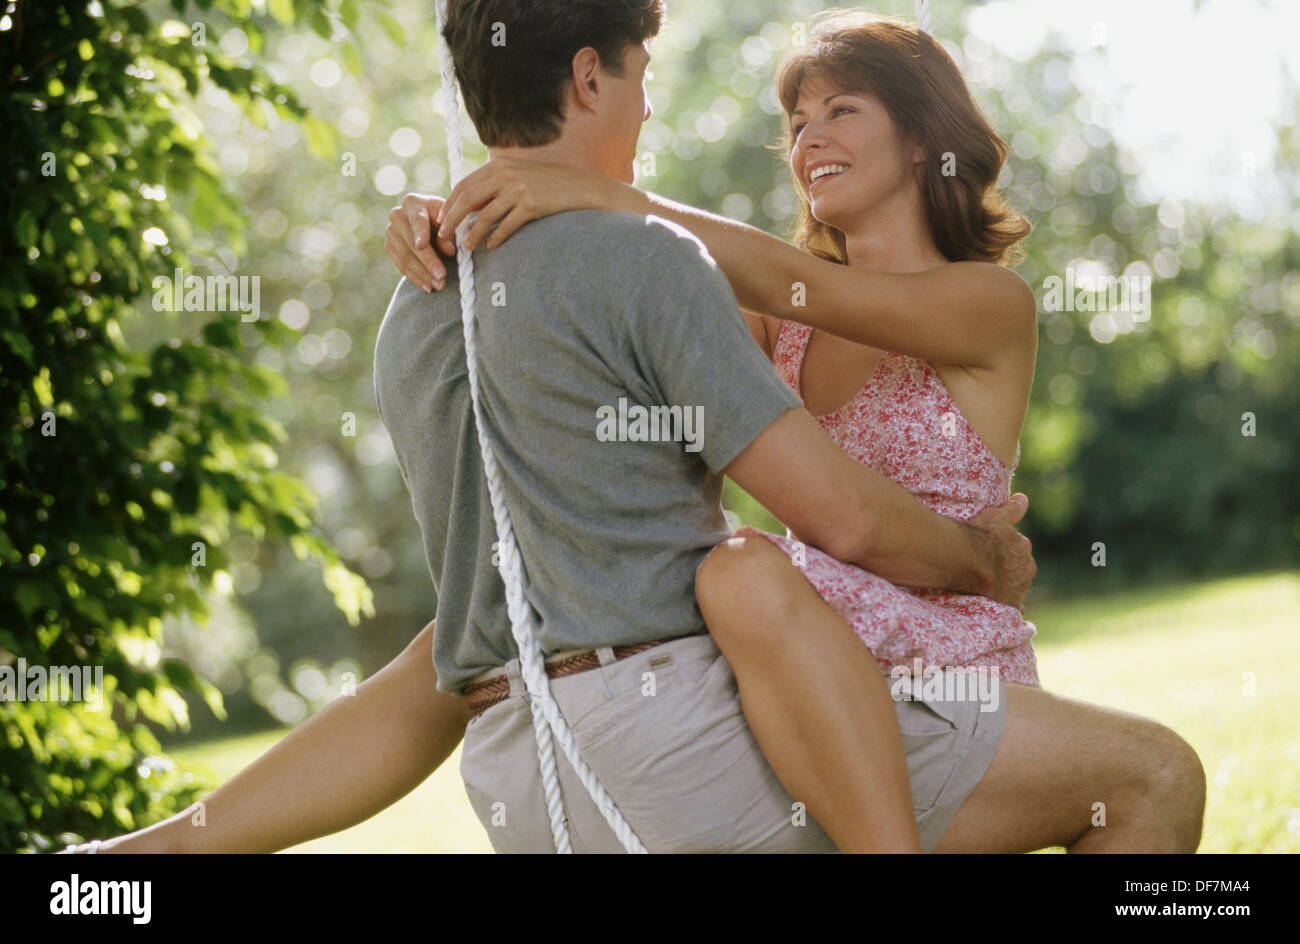 couple in love on a swing Stock Photo, Royalty Free Image ...